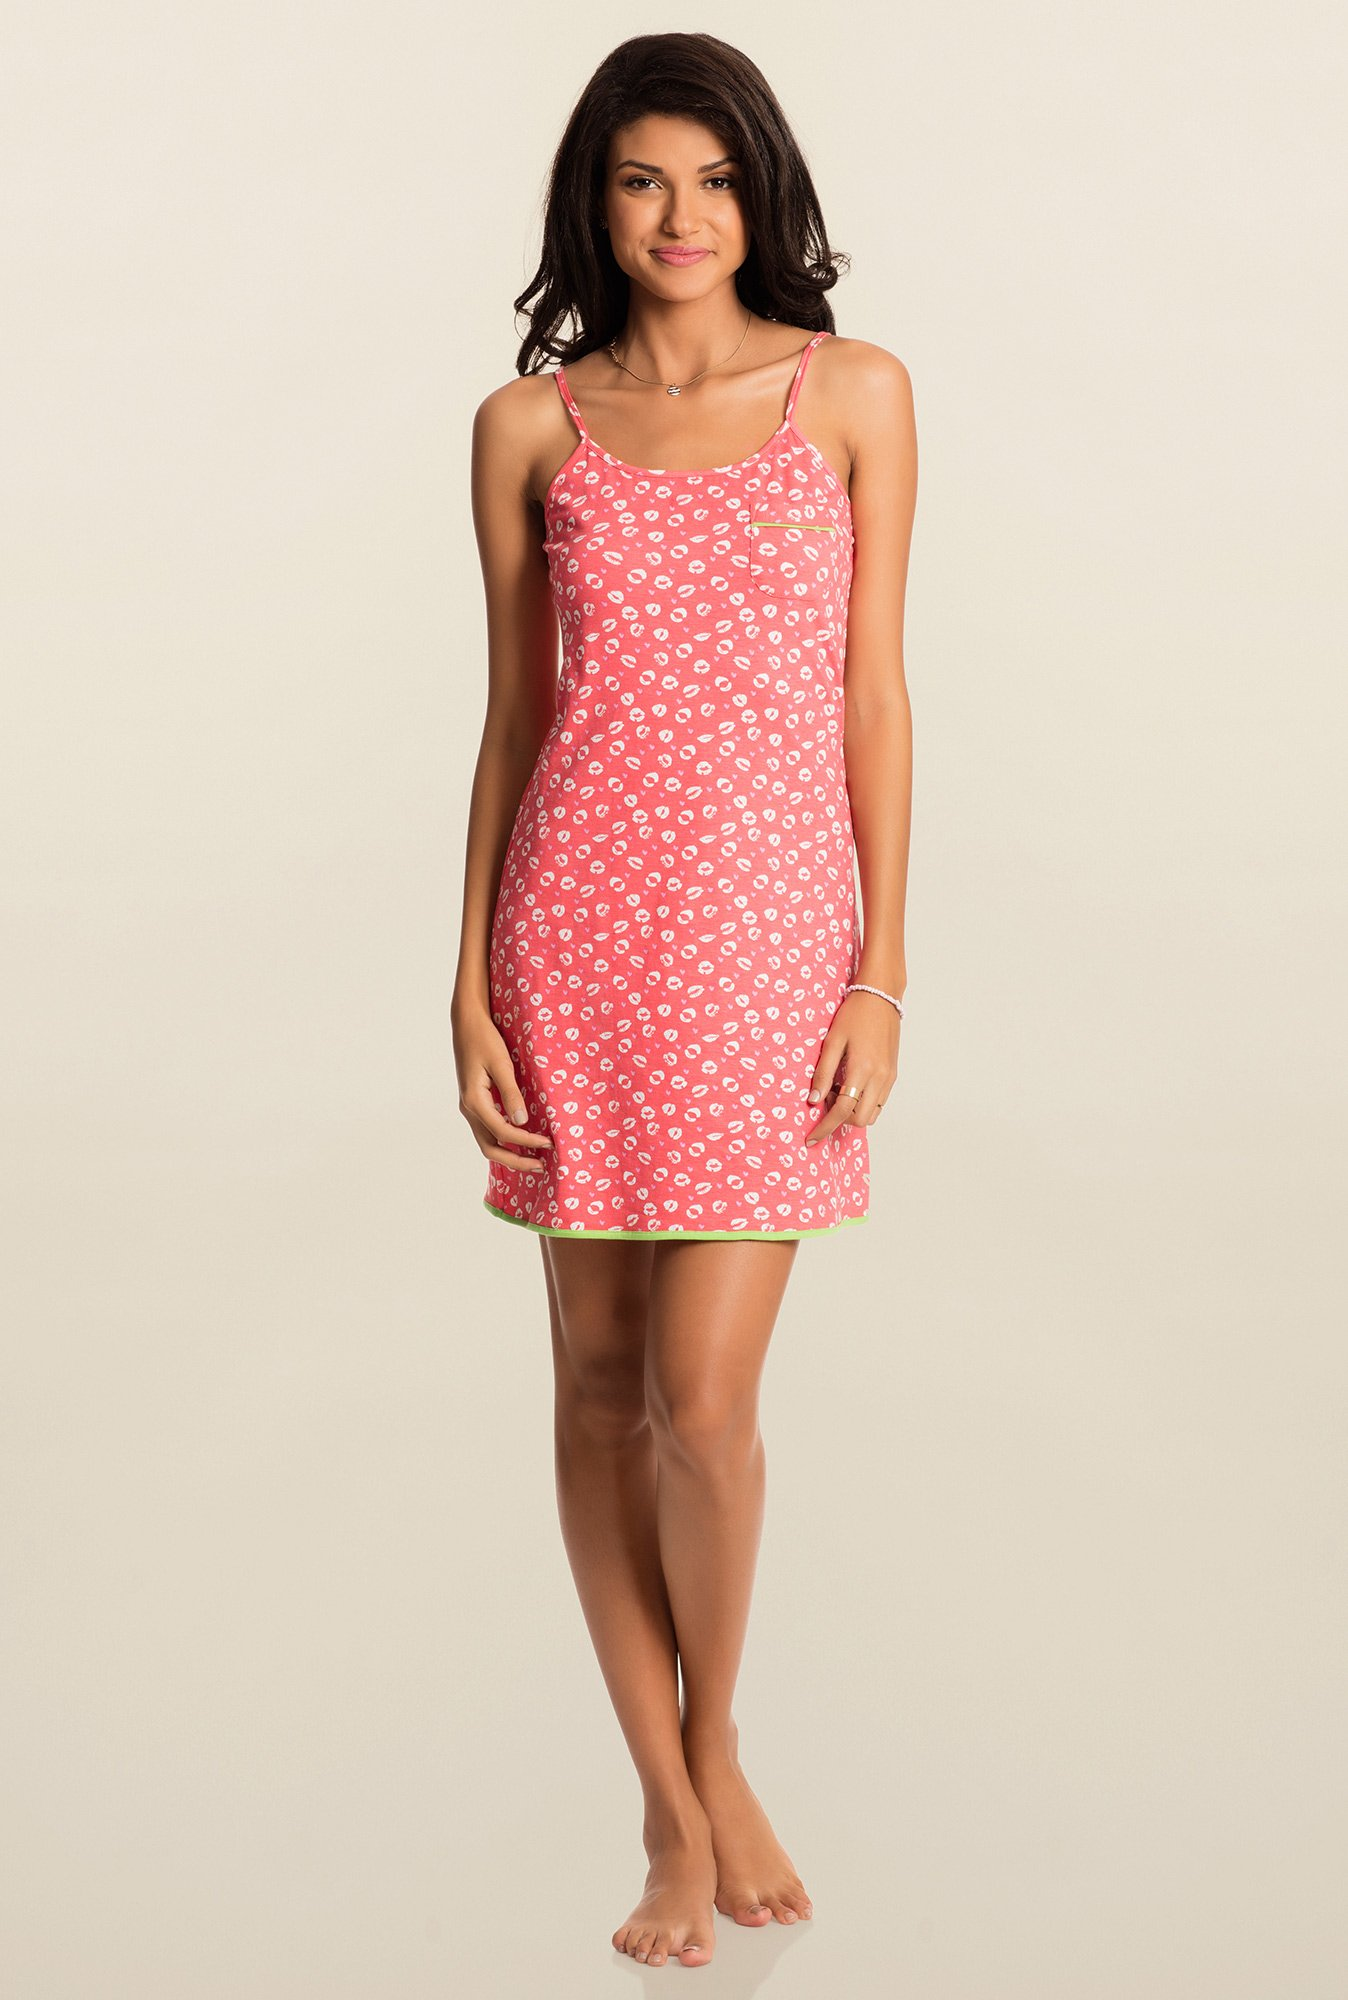 Pretty Secrets Pink Printed Chemise